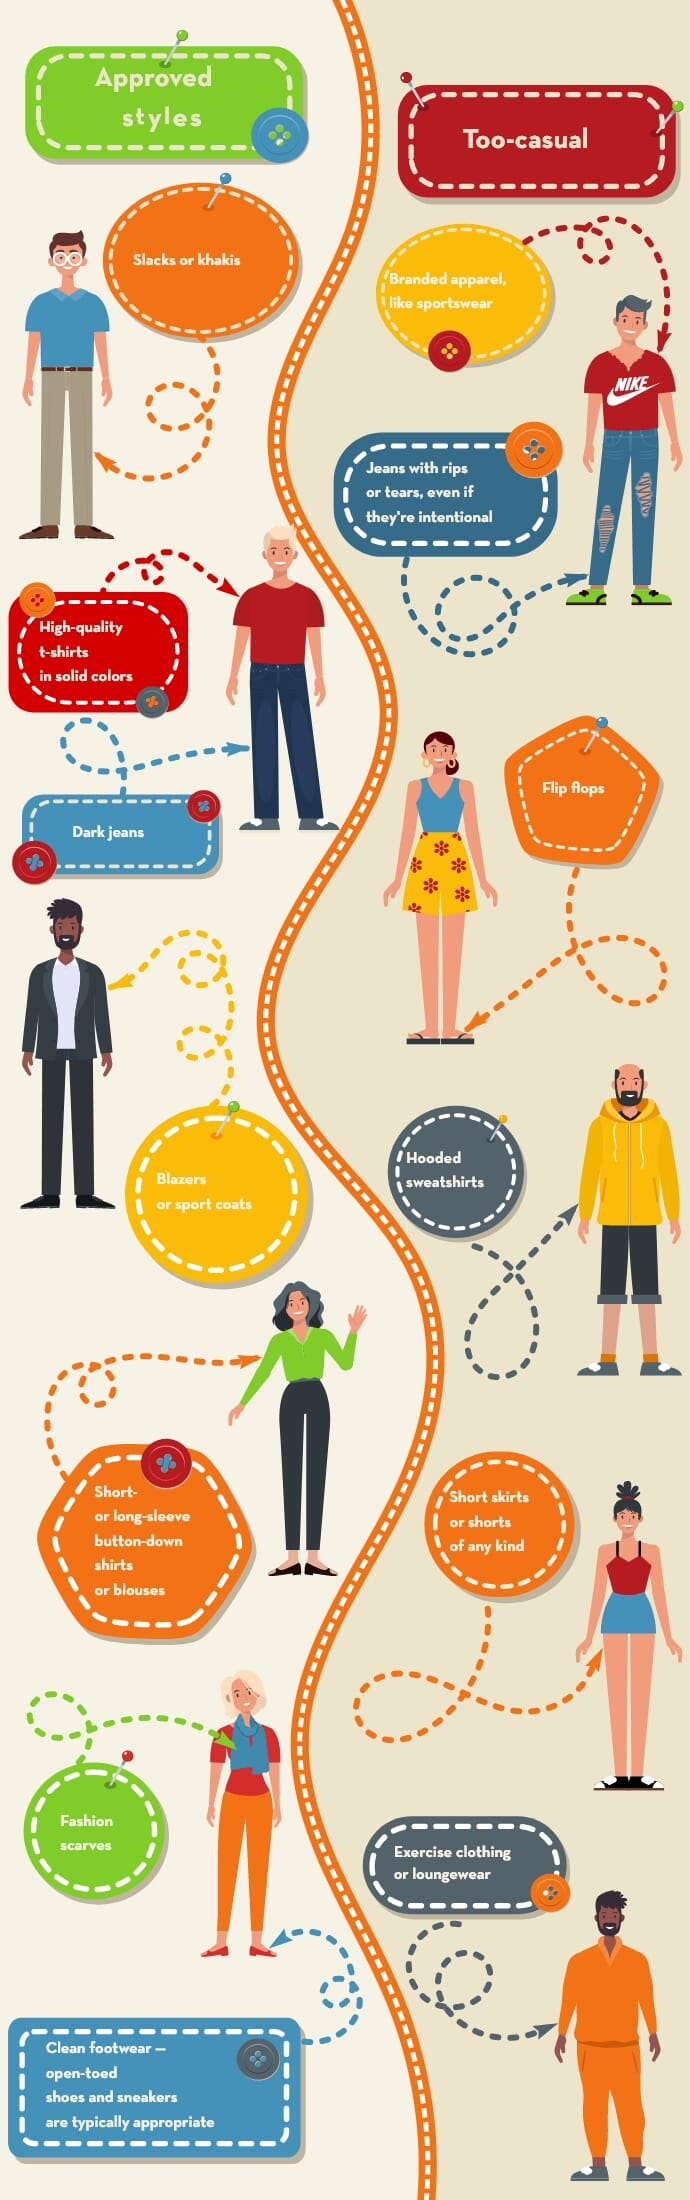 How to Communicate the Office Casual Look to Employees